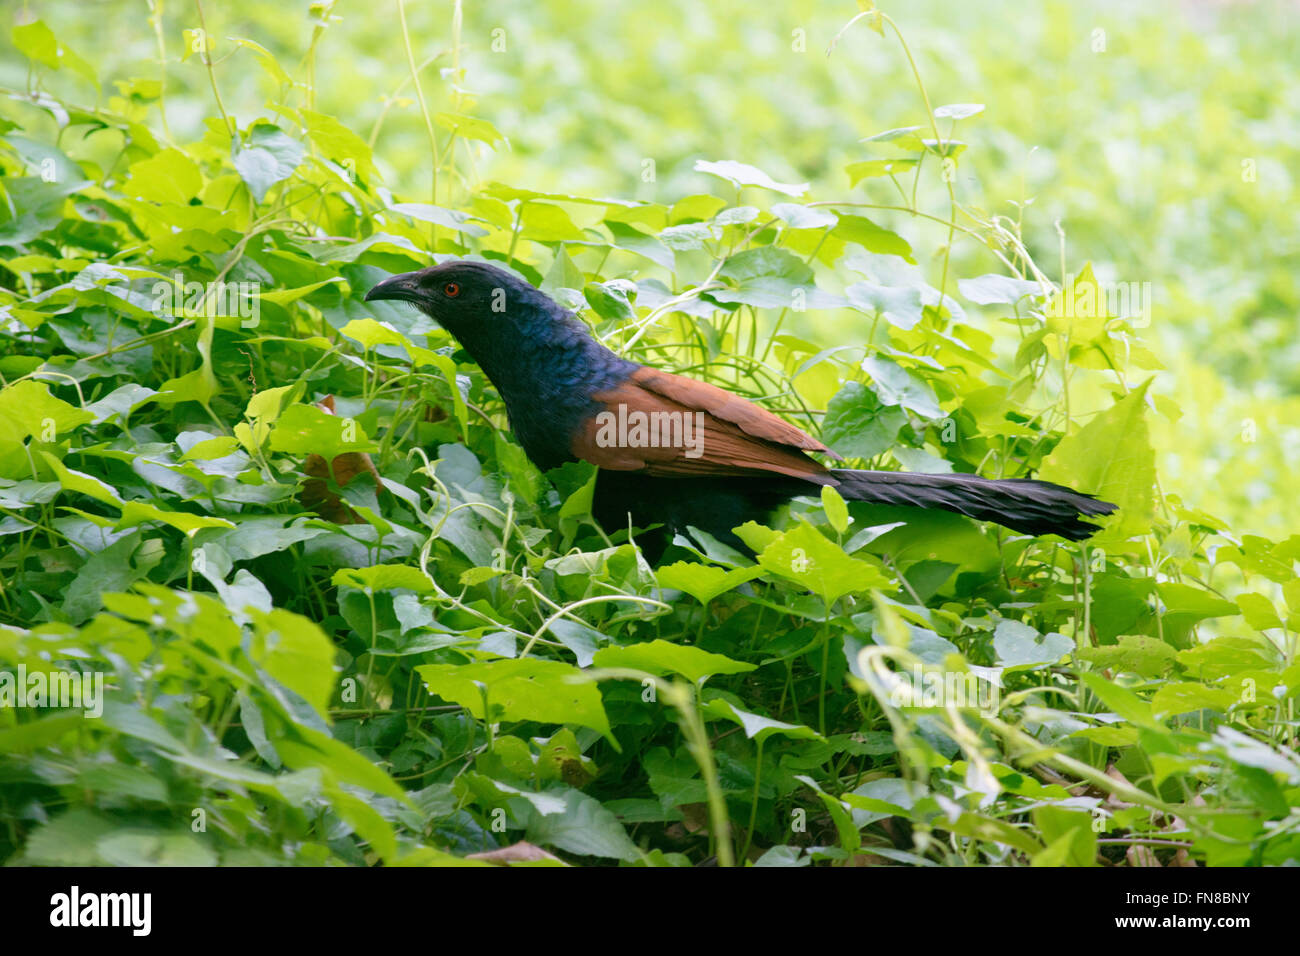 Greater Coucal - Stock Image